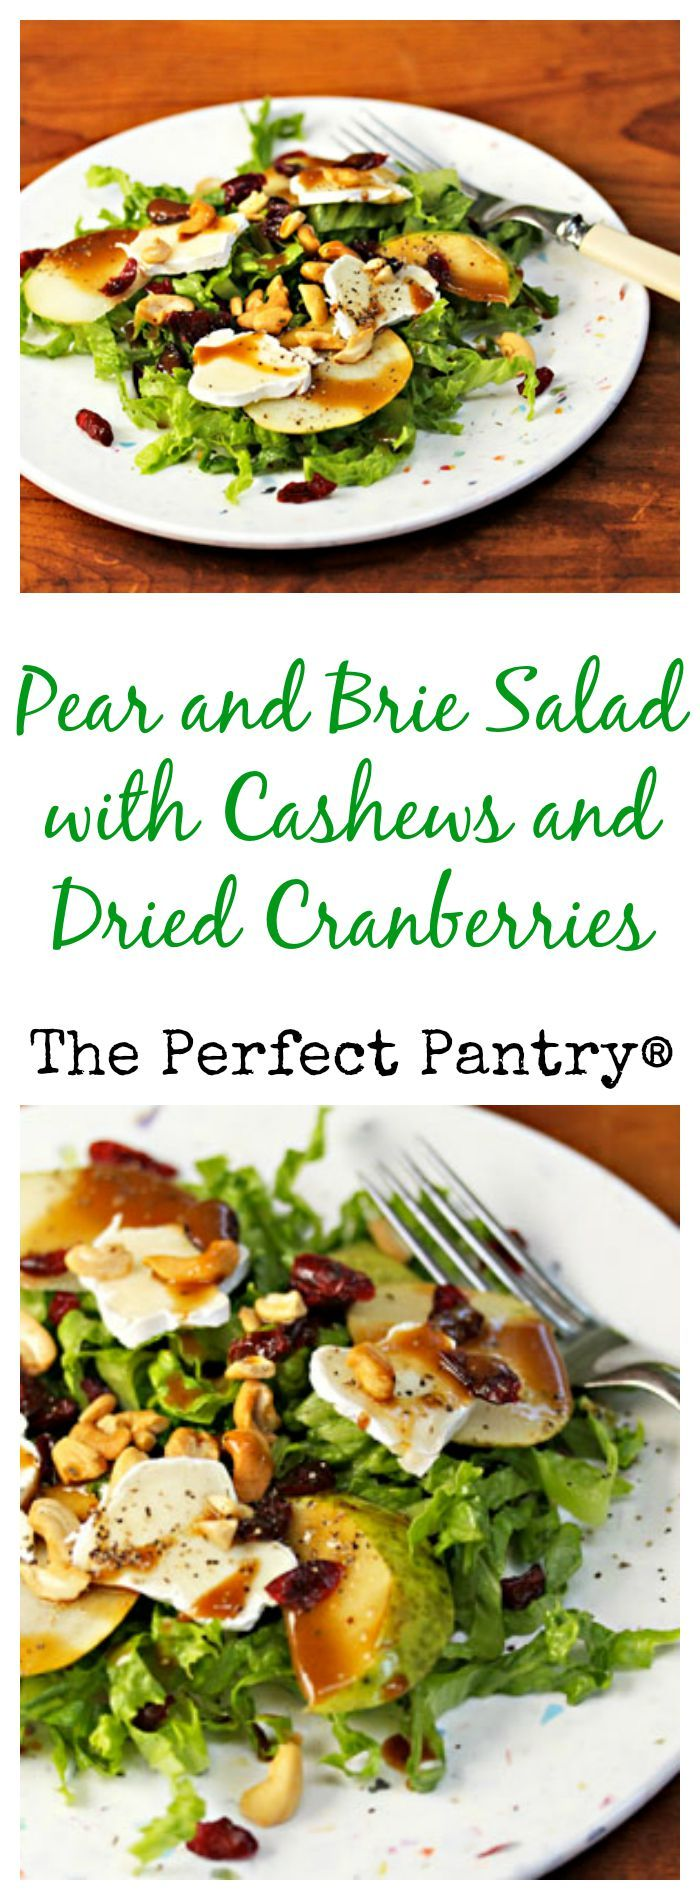 Best 25+ Gourmet salad ideas on Pinterest | Jacques pepin ...